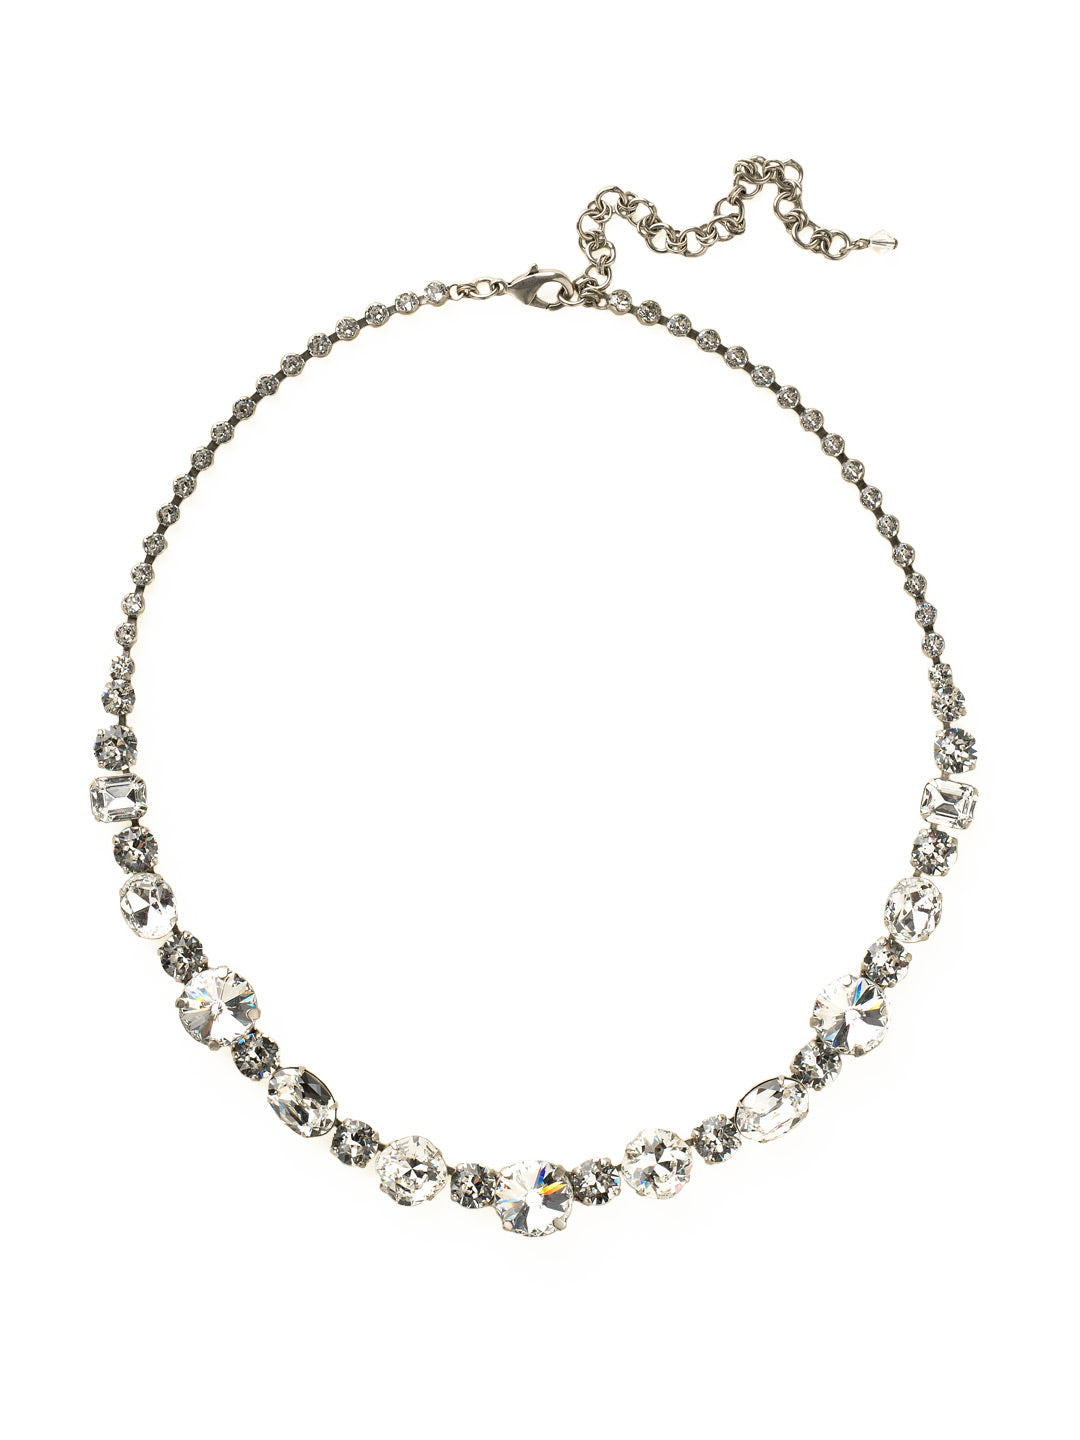 Graduated Classic Tennis Necklace - NCP38ASCRY